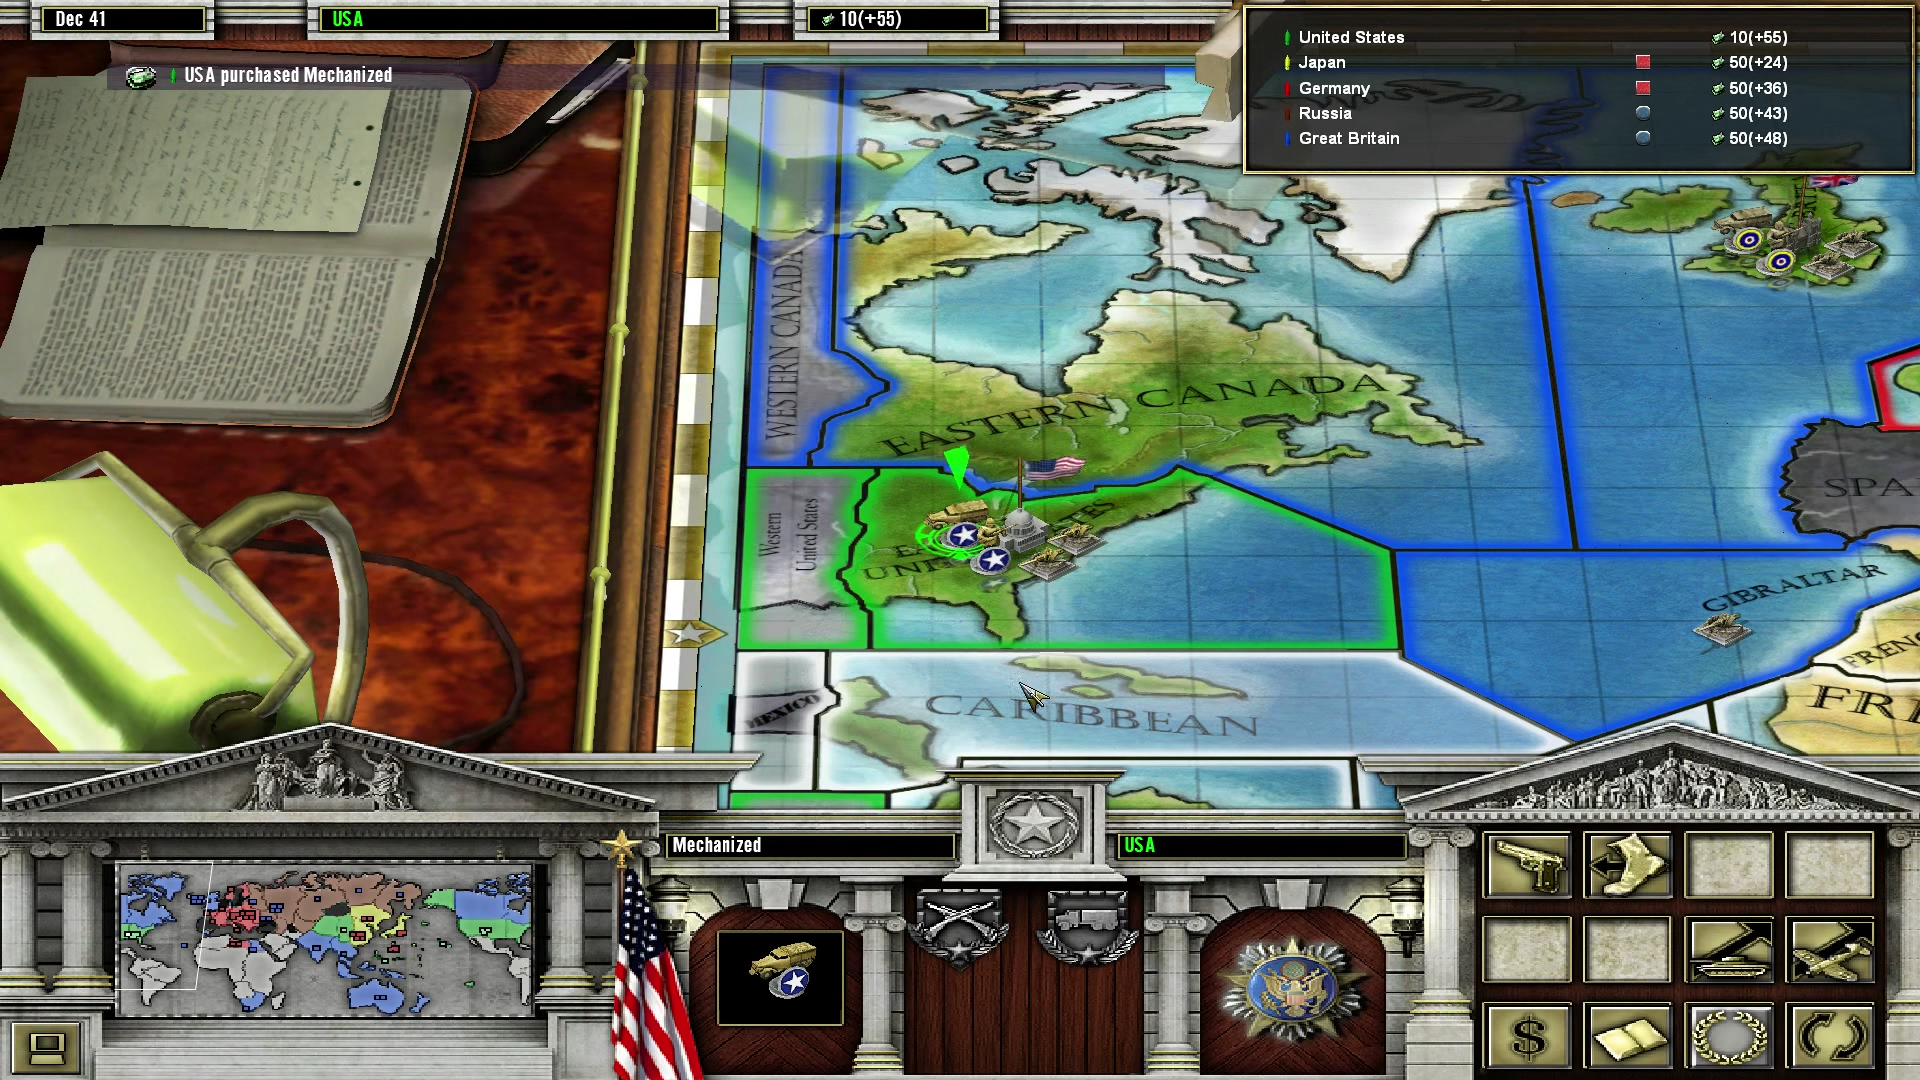 Axis & Allies RTS PC-2004 Win10fix&Mod | Axis & Allies ...